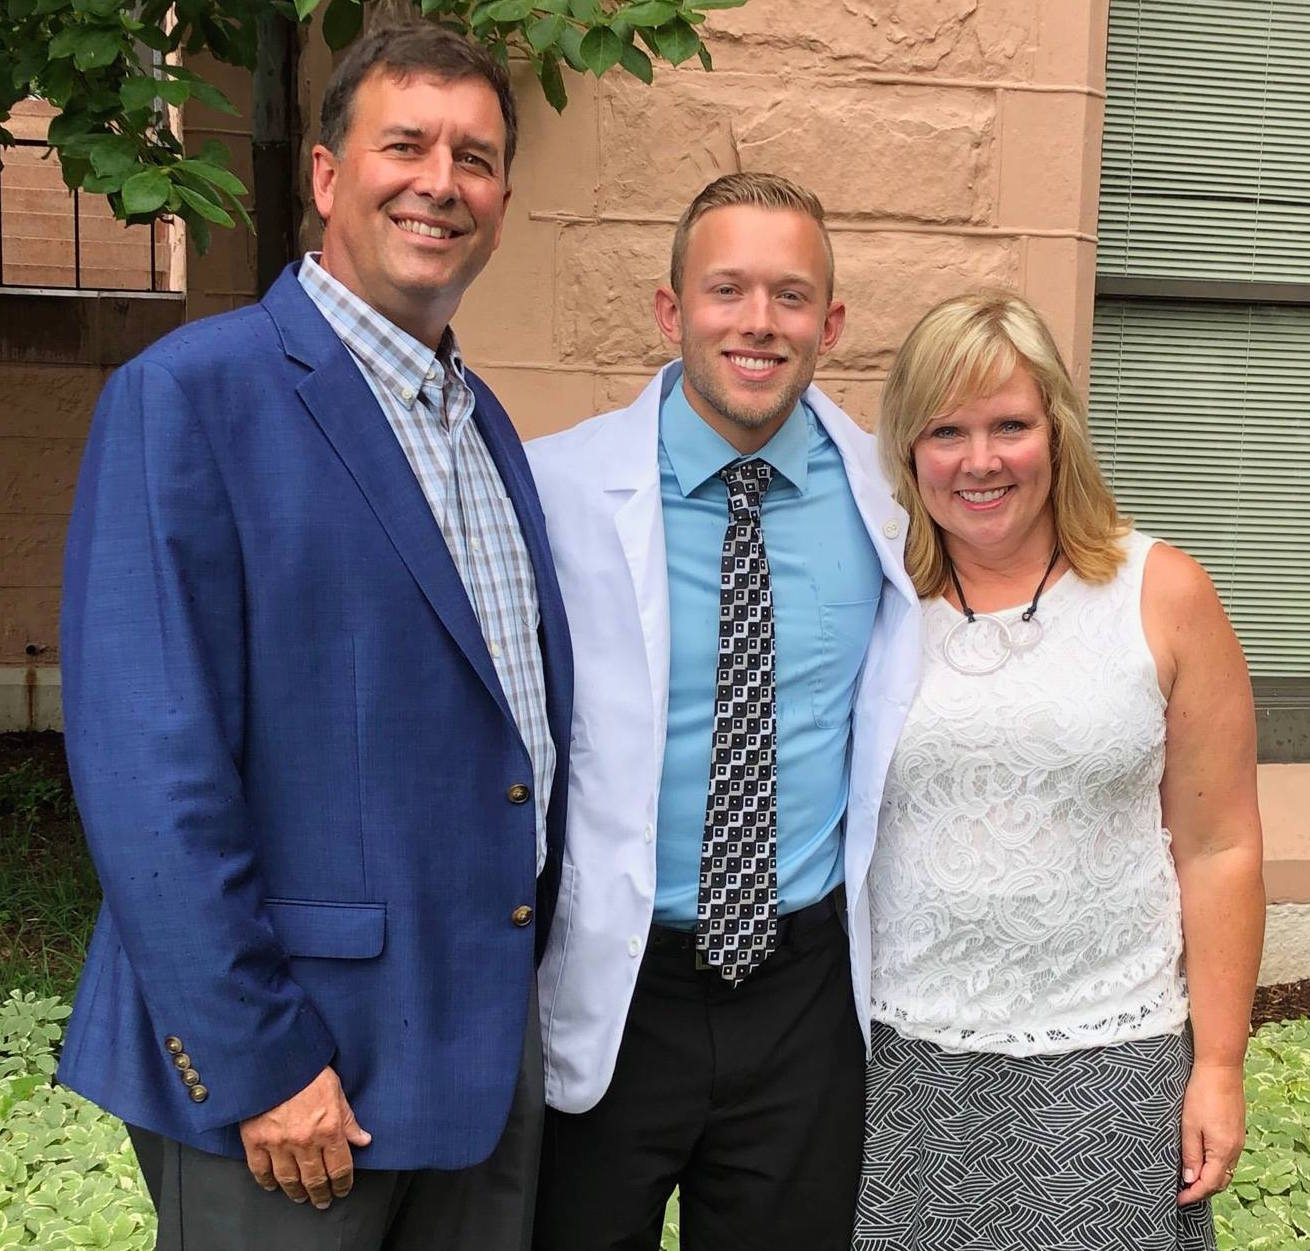 Luke with his parents at his white coat ceremy